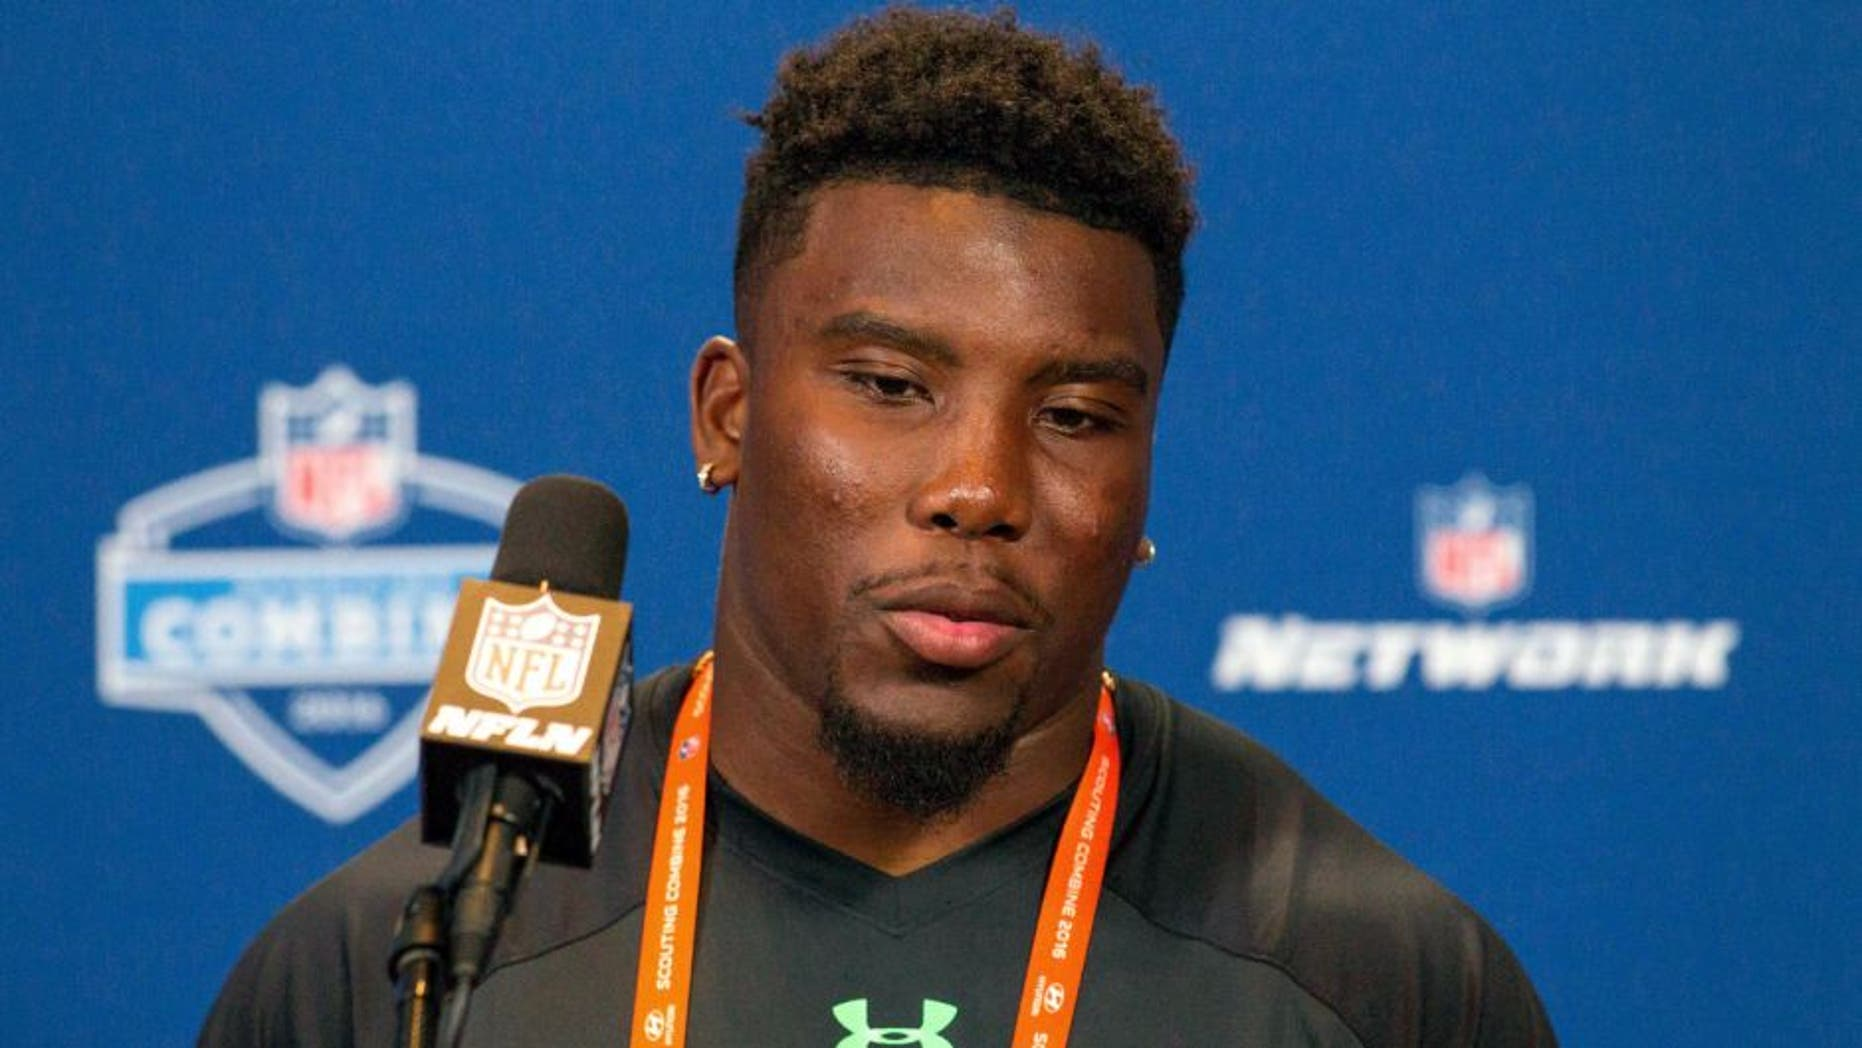 Feb 24, 2016; Indianapolis, IN, USA; Auburn Tigers running back Peyton Barber speaks to the media during the 2016 NFL Scouting Combine at Lucas Oil Stadium. Mandatory Credit: Trevor Ruszkowski-USA TODAY Sports